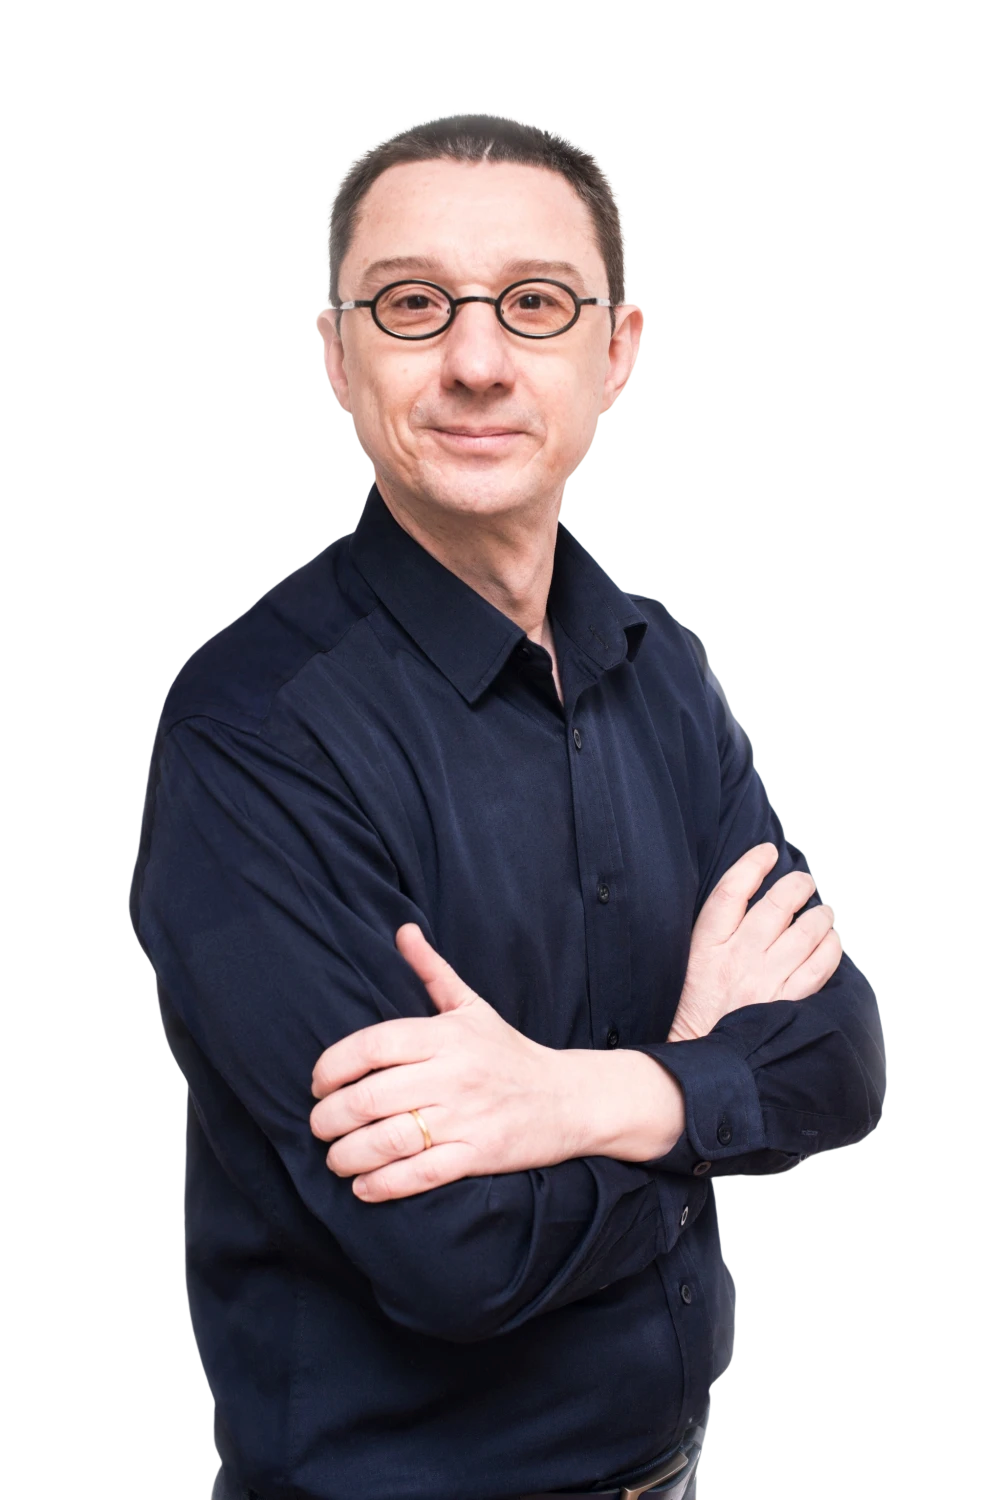 Author, keynote speaker, sinologist and technology entrepreneur. - Pascal Coppens has lived and worked in China and Silicon Valley for over 20 years. He is an international speaker at nexxworks and gives keynote speeches and workshops about innovation in China.Learn more